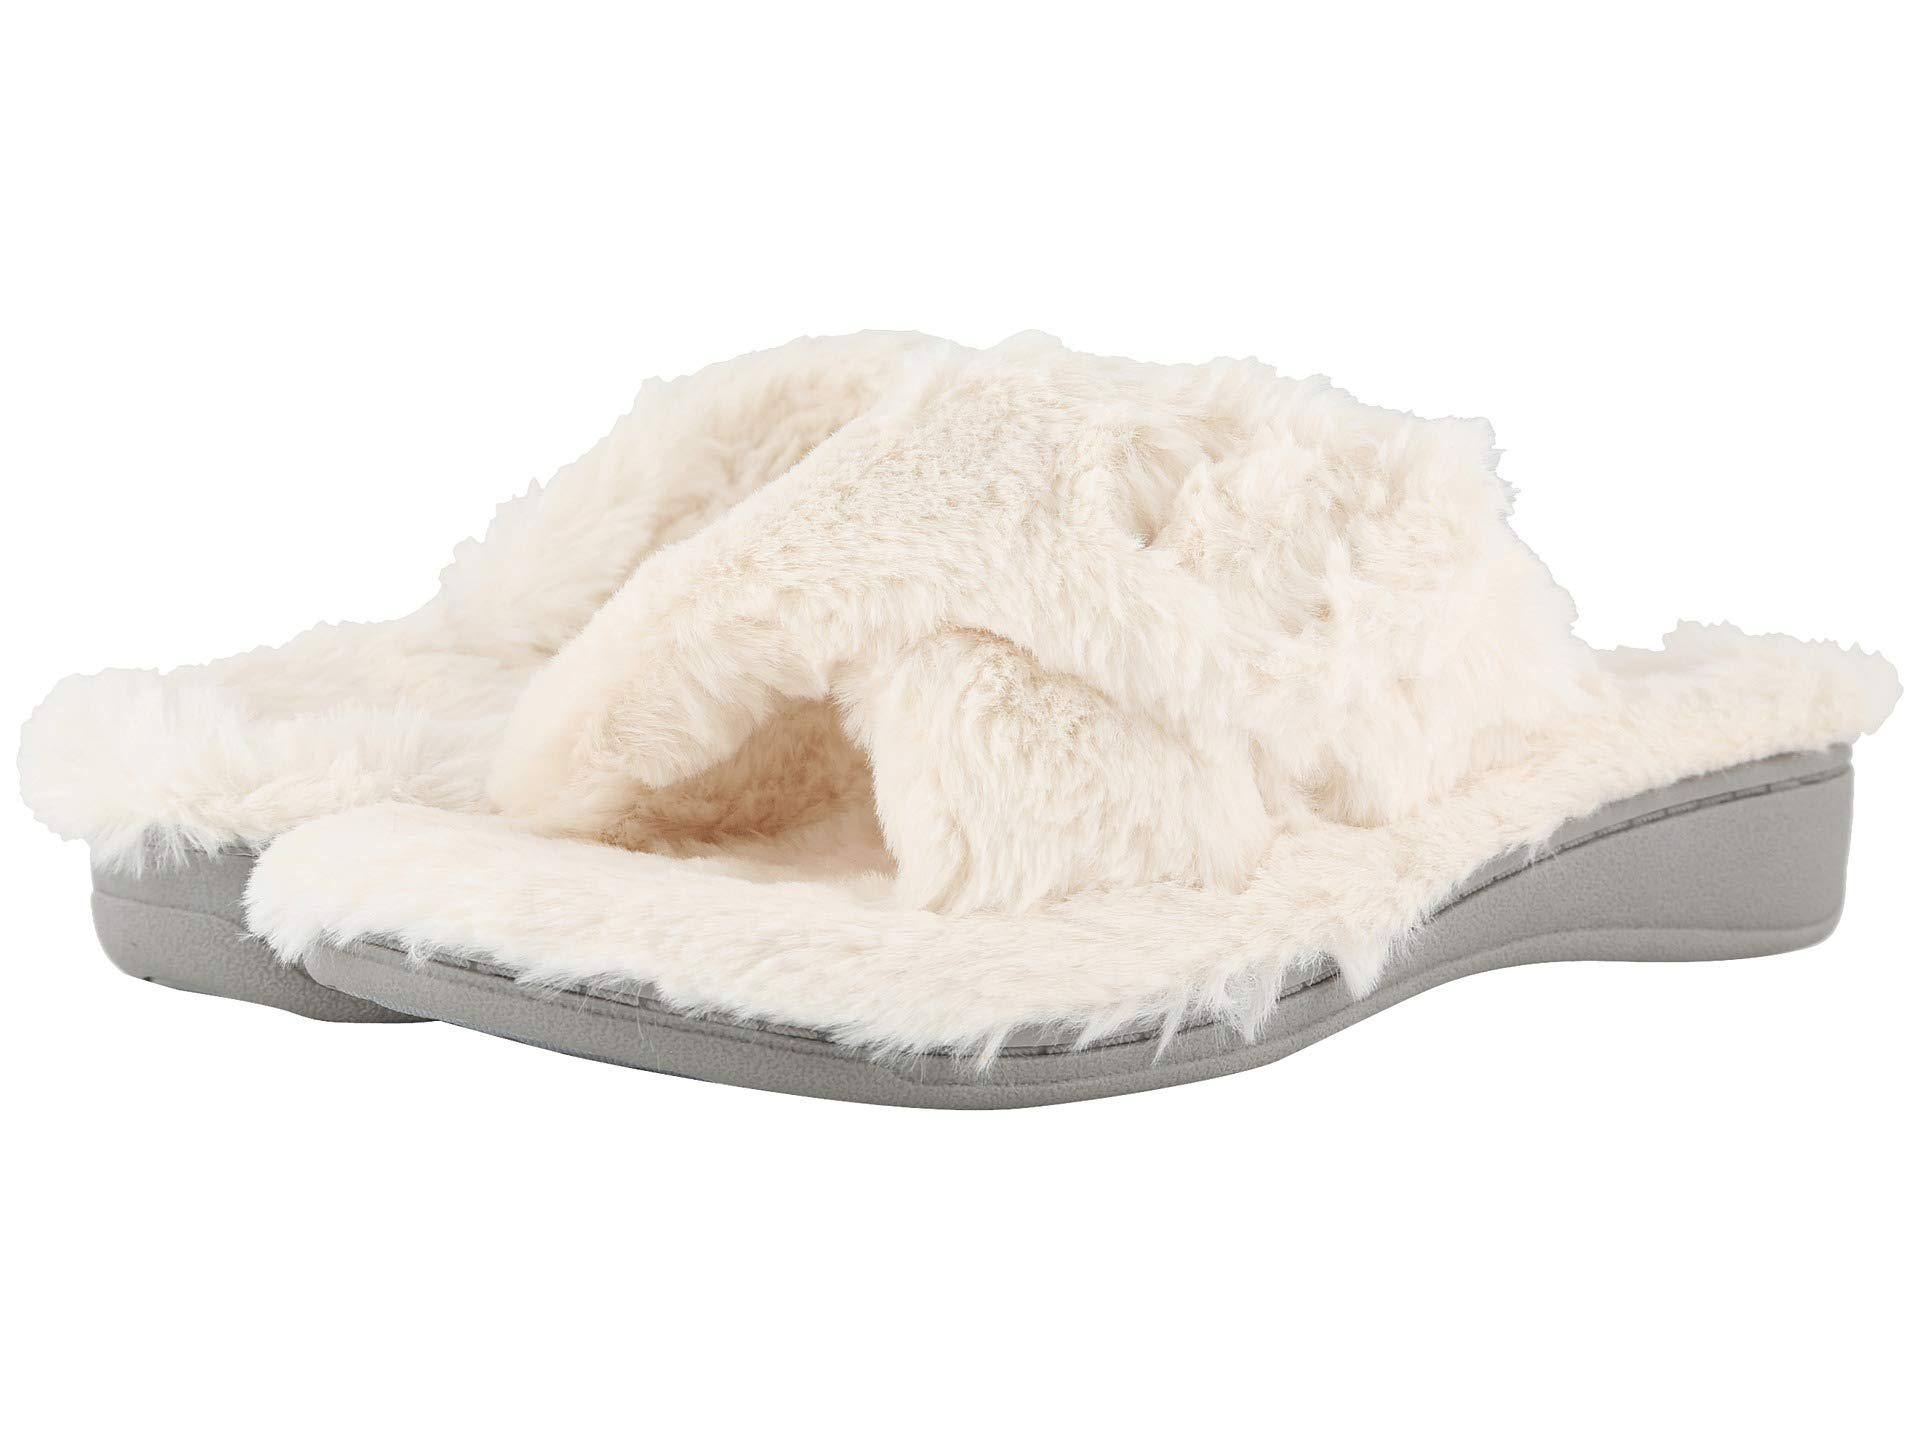 a15a7ce540b Lyst - Vionic Relax Plush (black) Women s Slippers in White